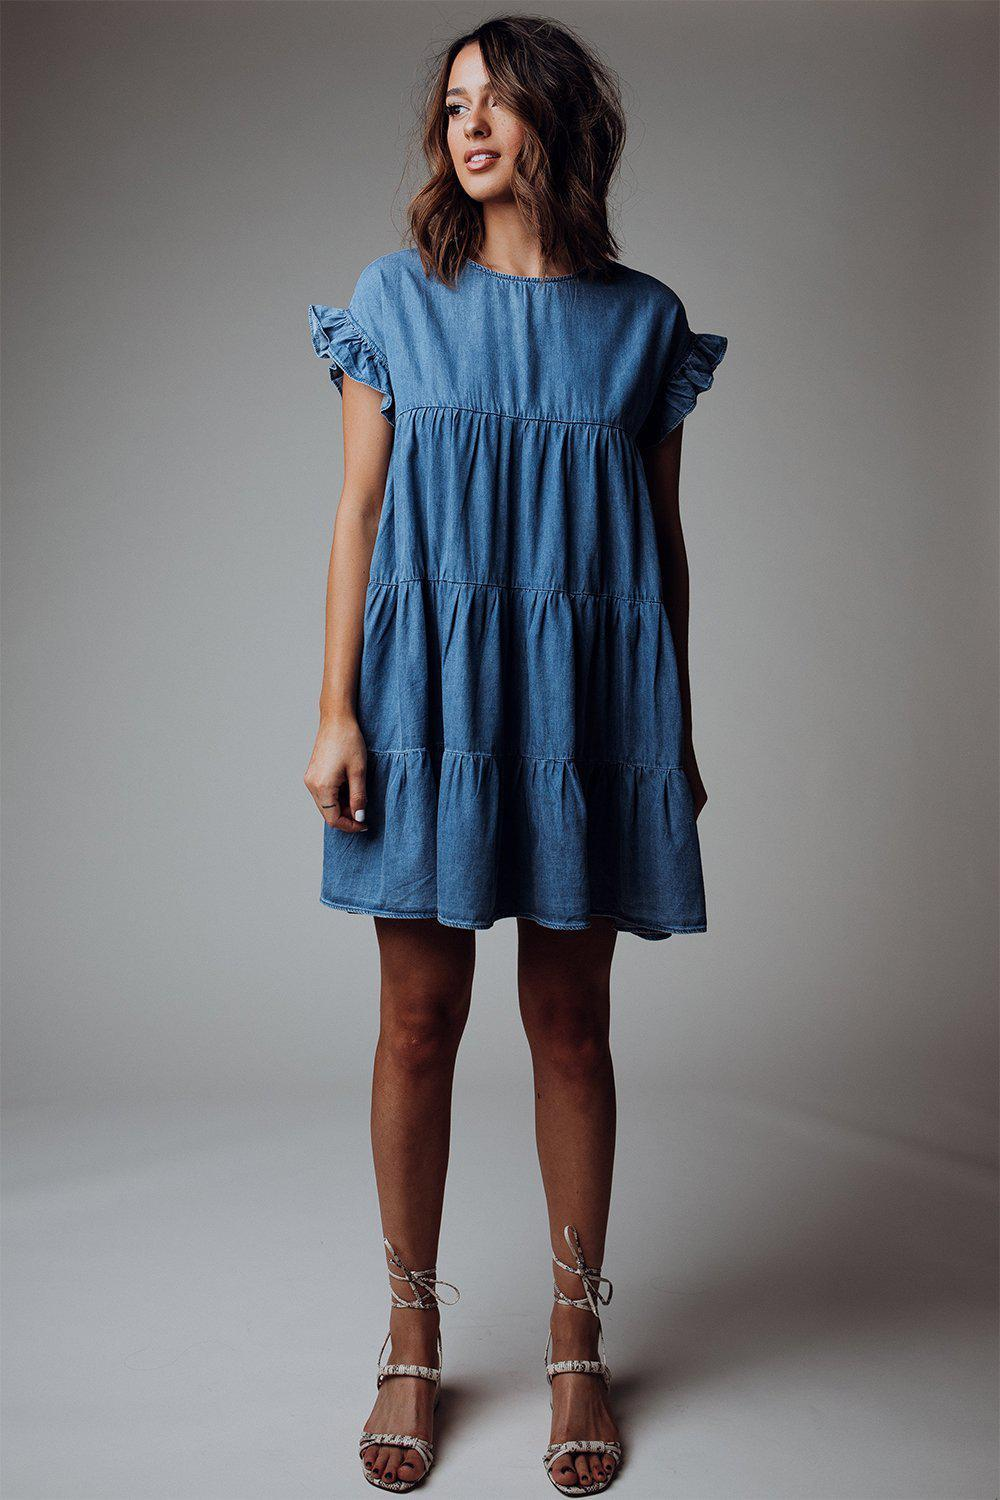 best_seller, Denim Blues Tiered Dress - FINAL SALE, Dress, women's clothing, dresses, skirts, coats, jackets, shoes, boots, tops, tee shirts, jeans, free people, levi's, rollas, jumpsuits, bottoms, tops, sweaters, pullovers, pants, shorts, sweats,.